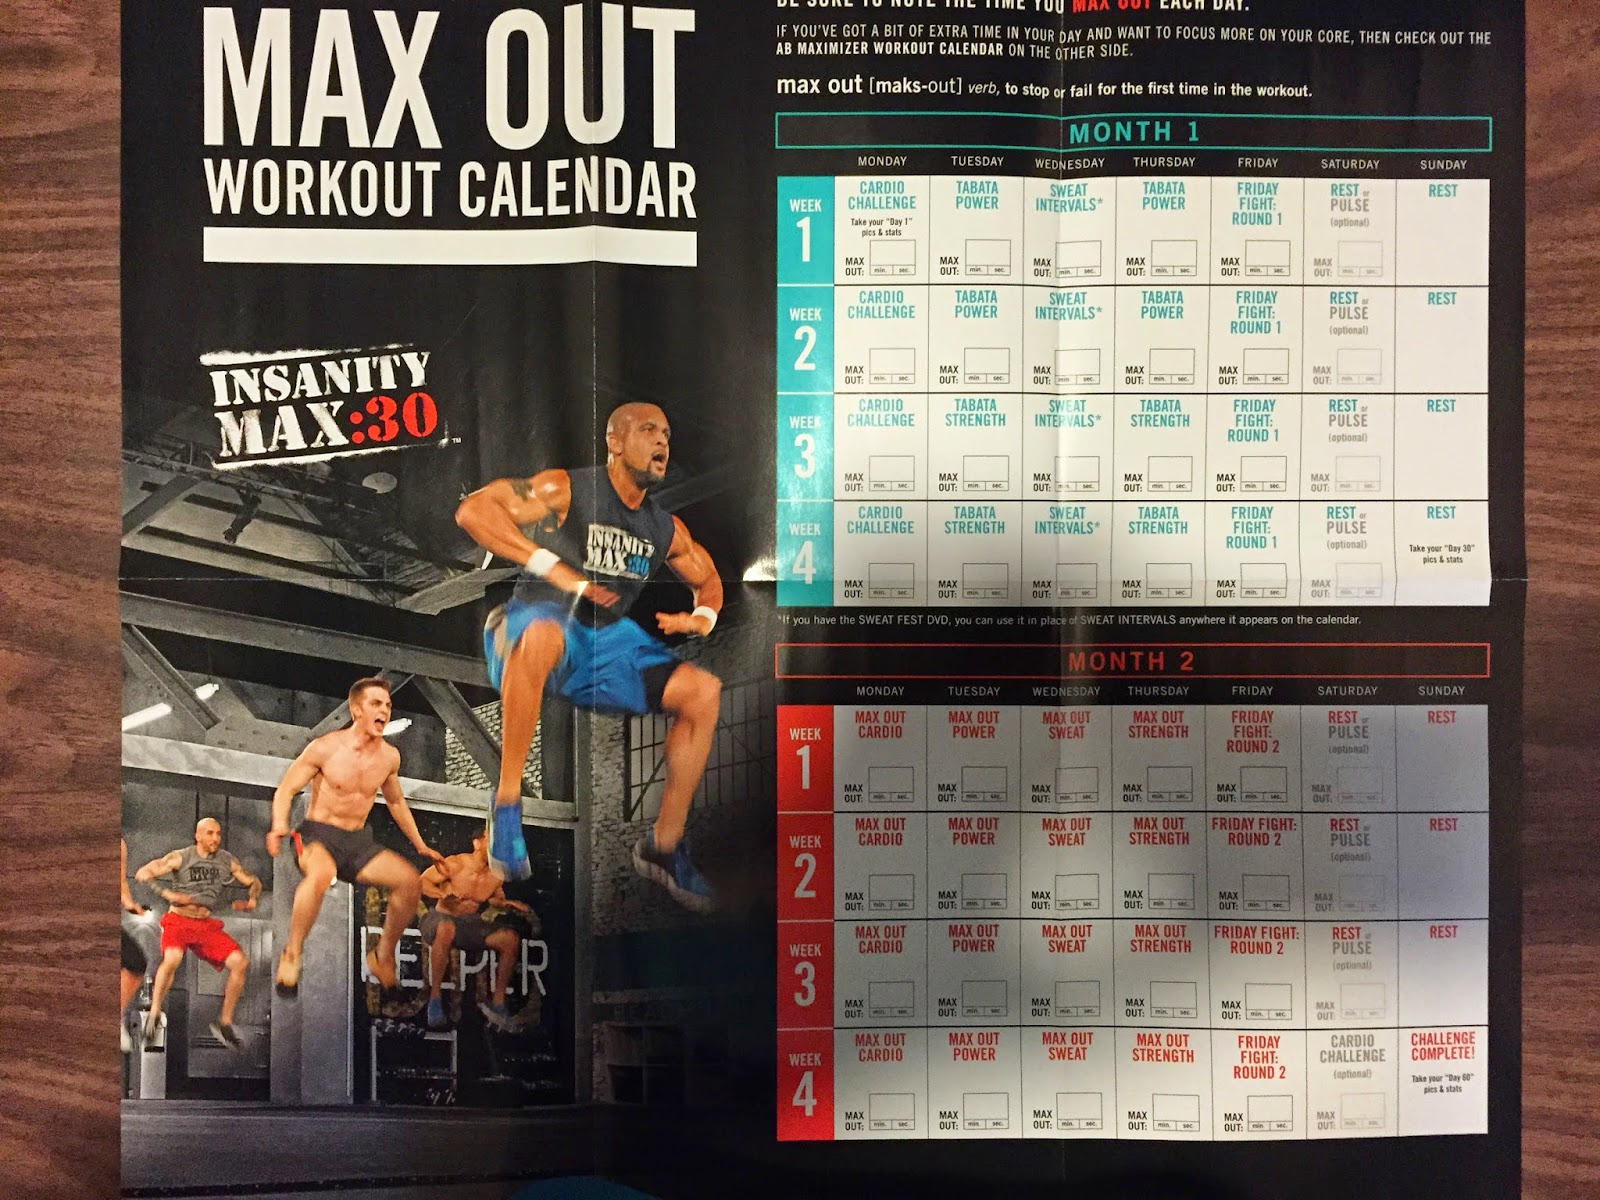 Fill Me With Meaning: December 2014 with Calendario Insanity Max 30